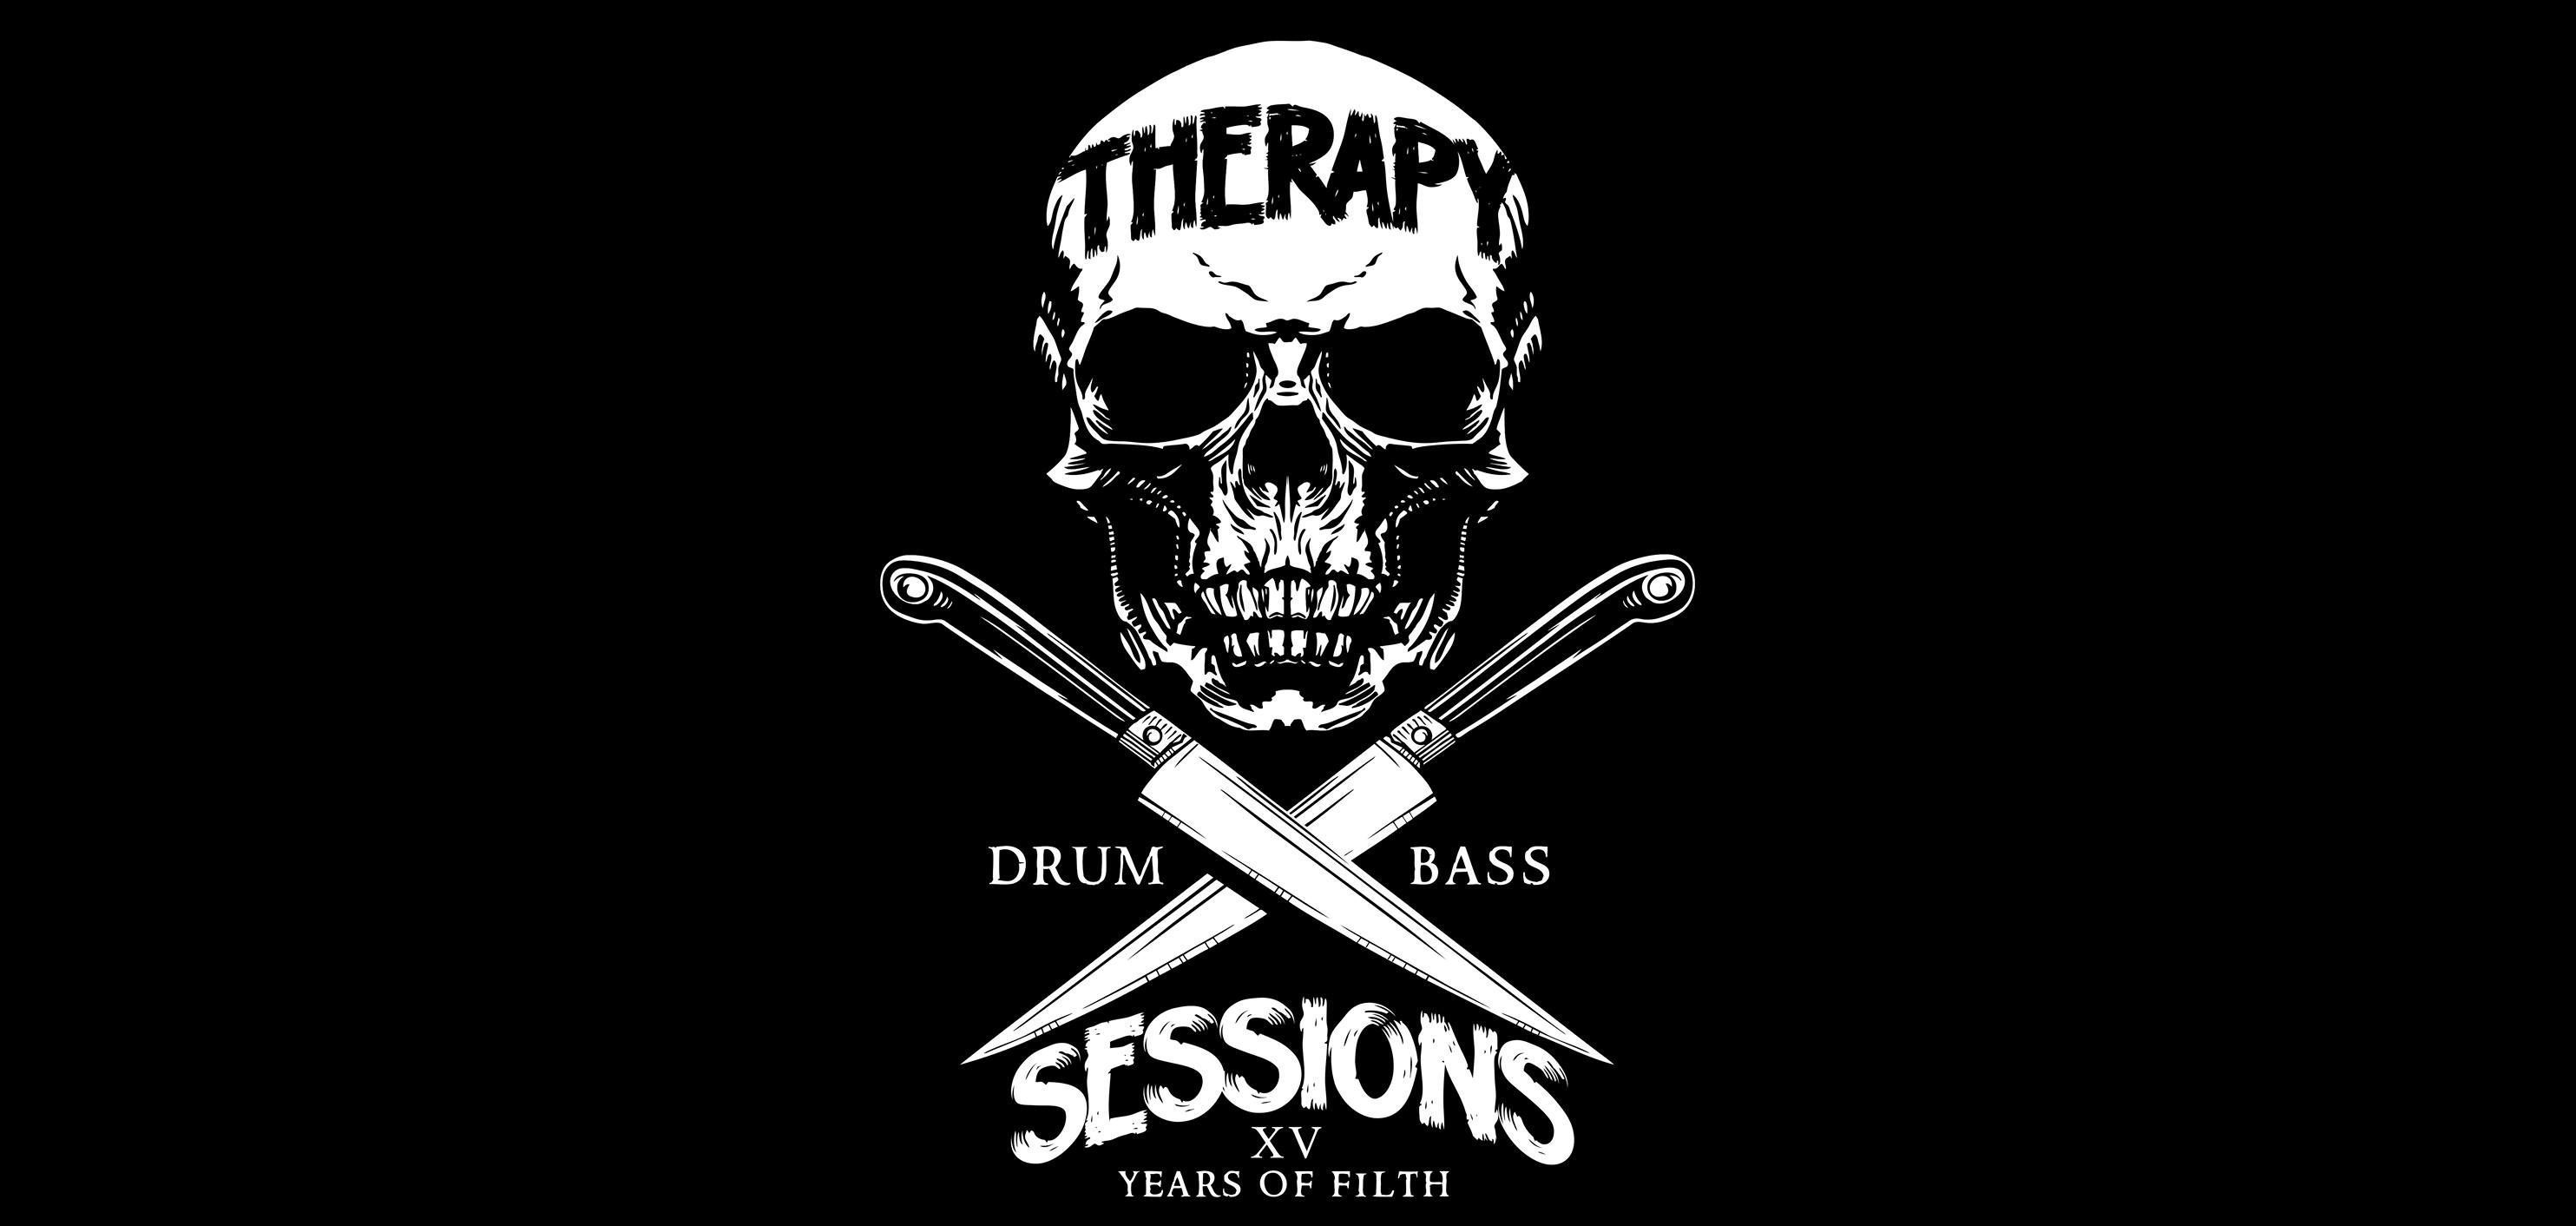 General 2968x1412 Therapy Session drum and bass logo logotype neurofunk rave electronic music skull monochrome knife